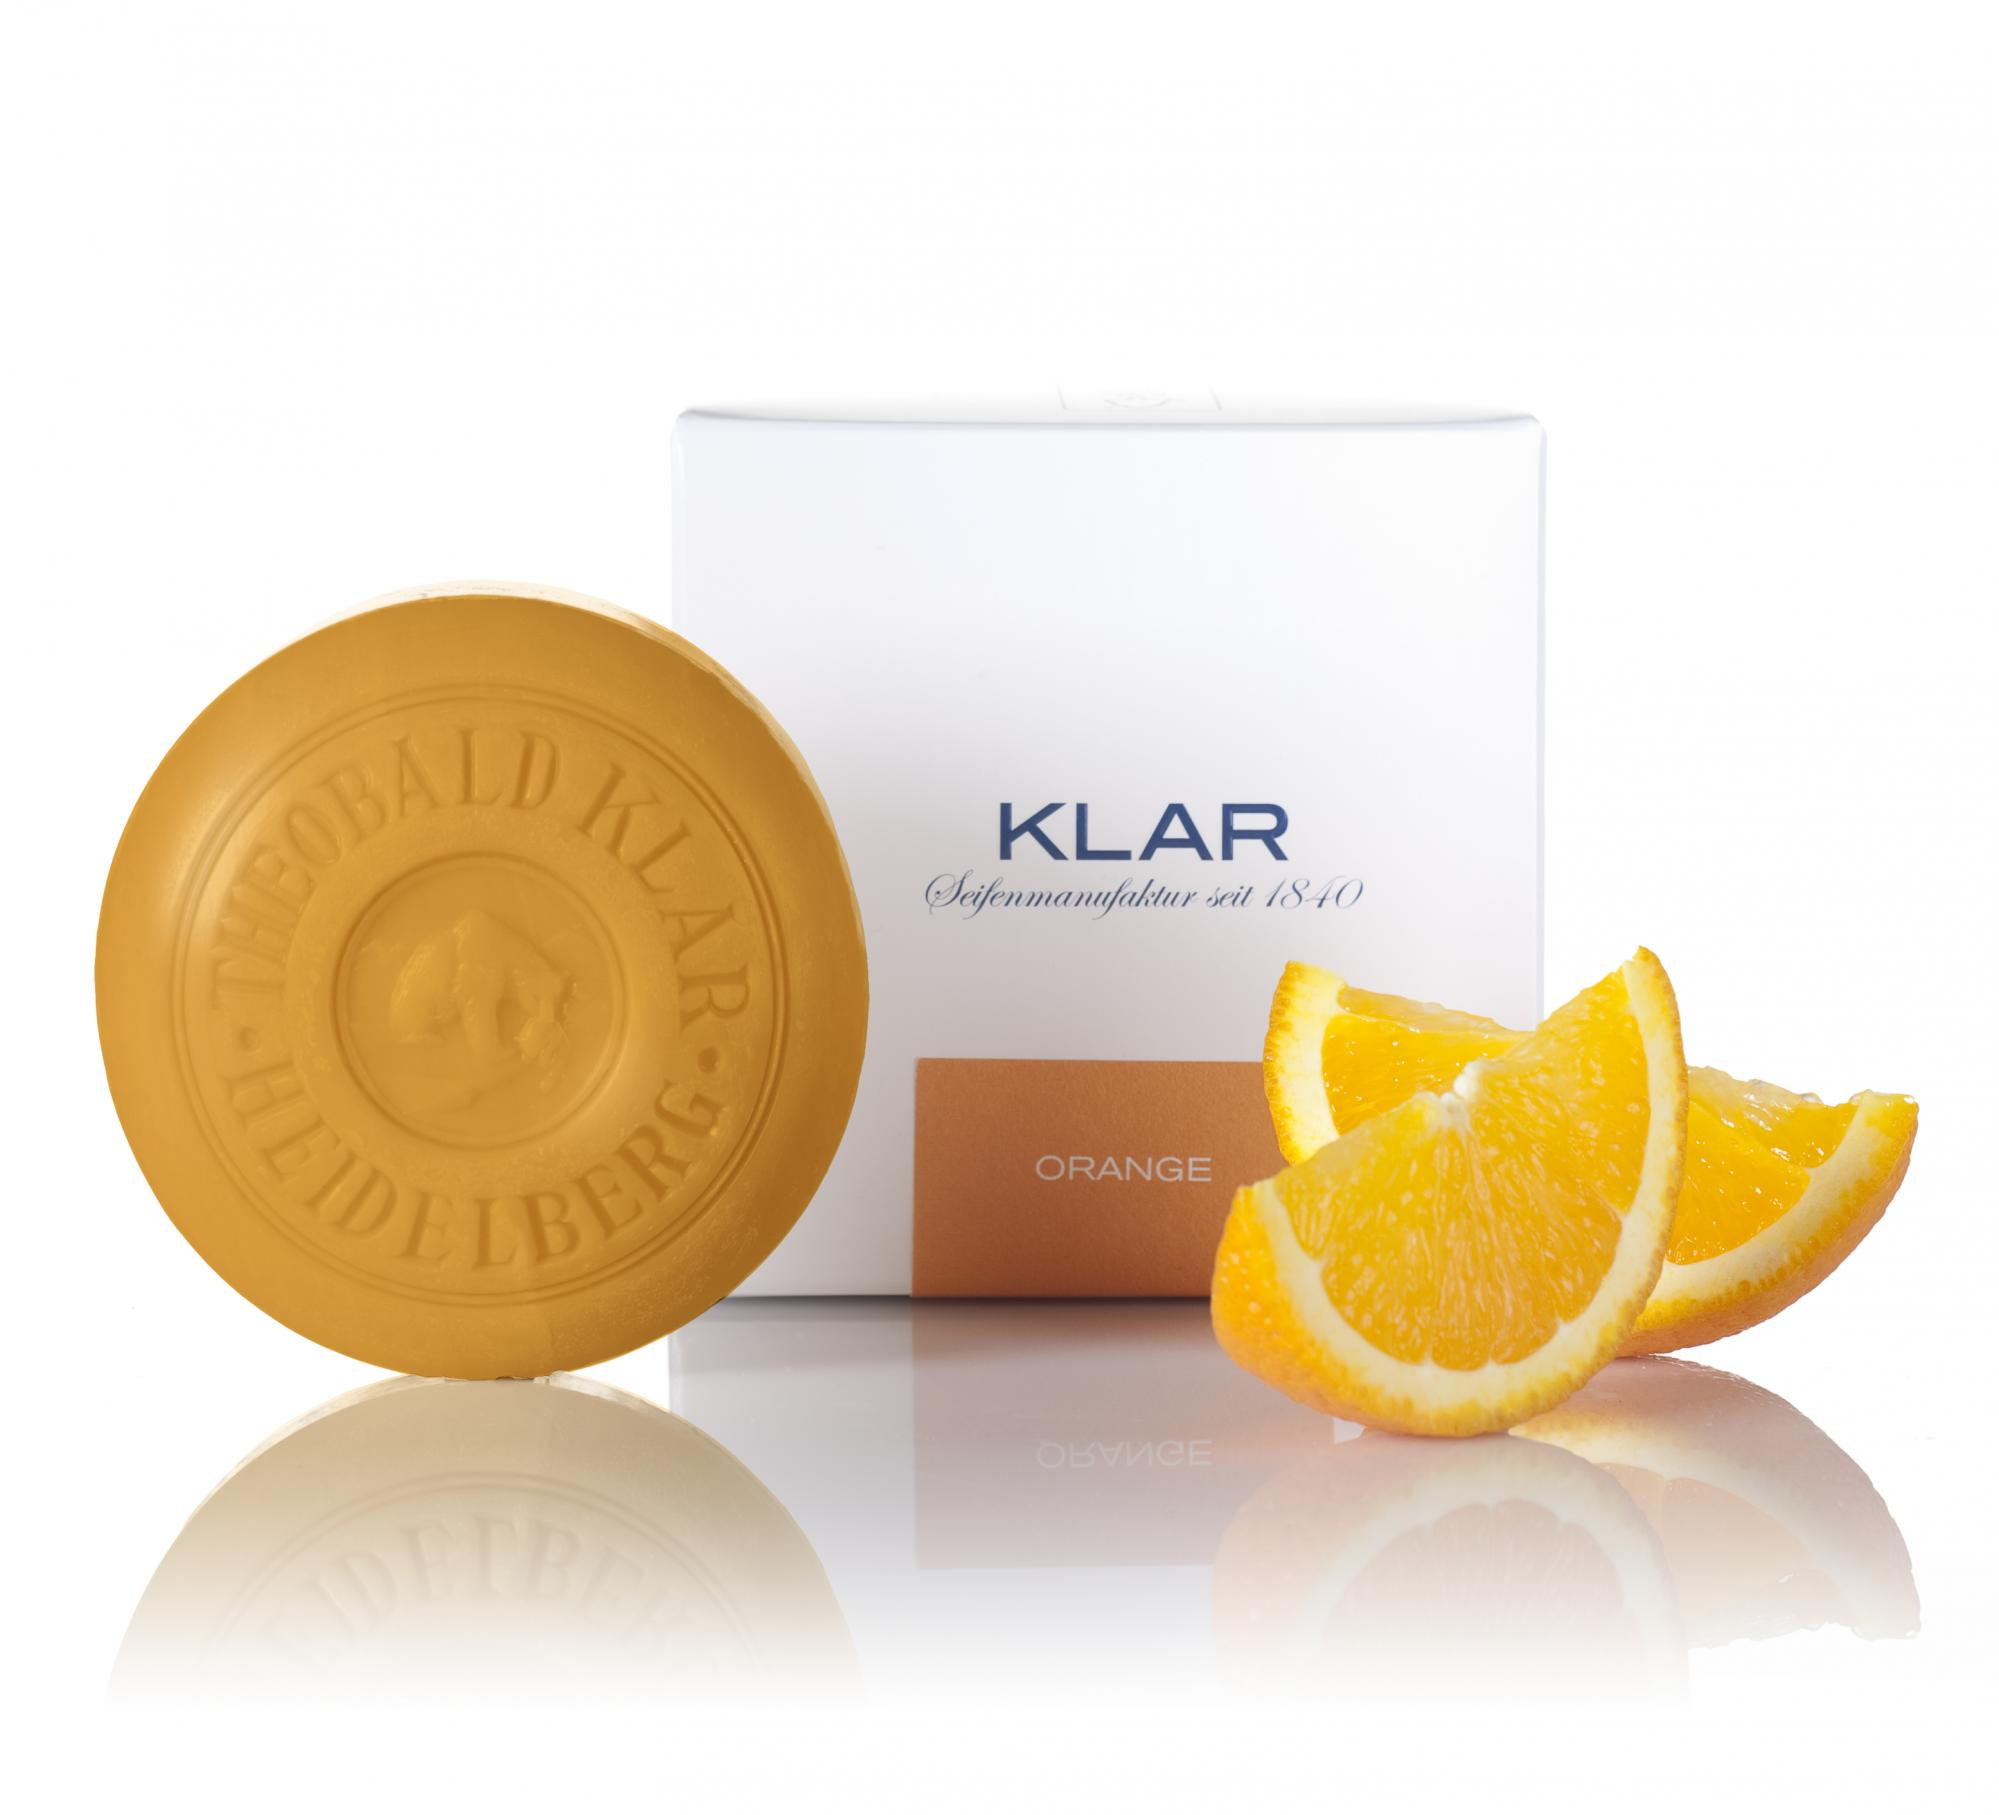 Klar Orange Essential Oil Soap 150g